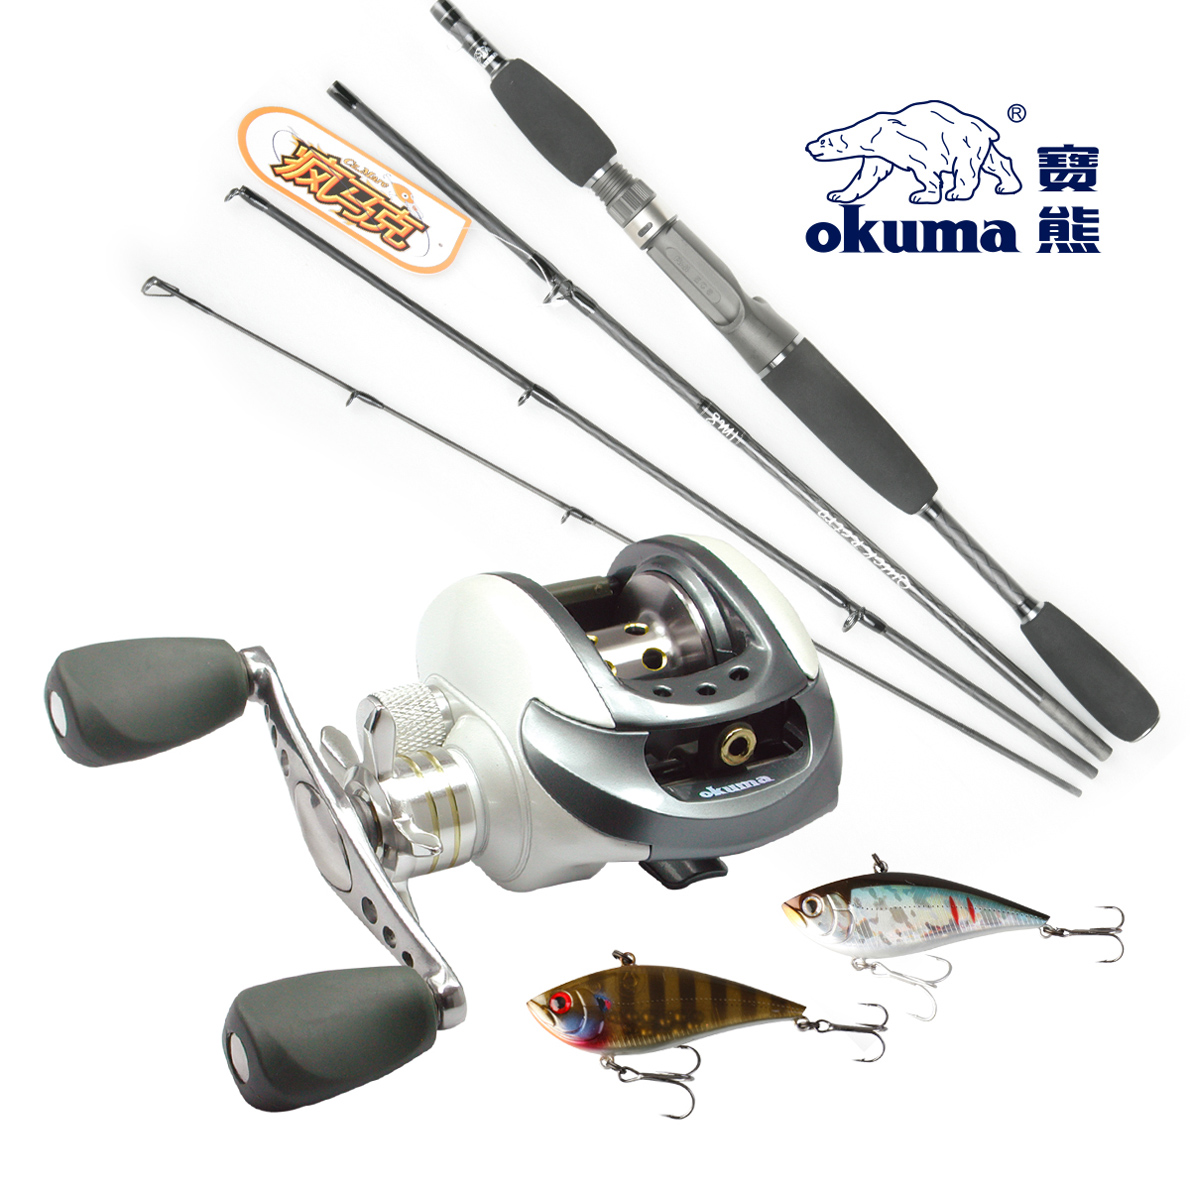 okuma 10 bearings bait casting lure rod set lure fishing